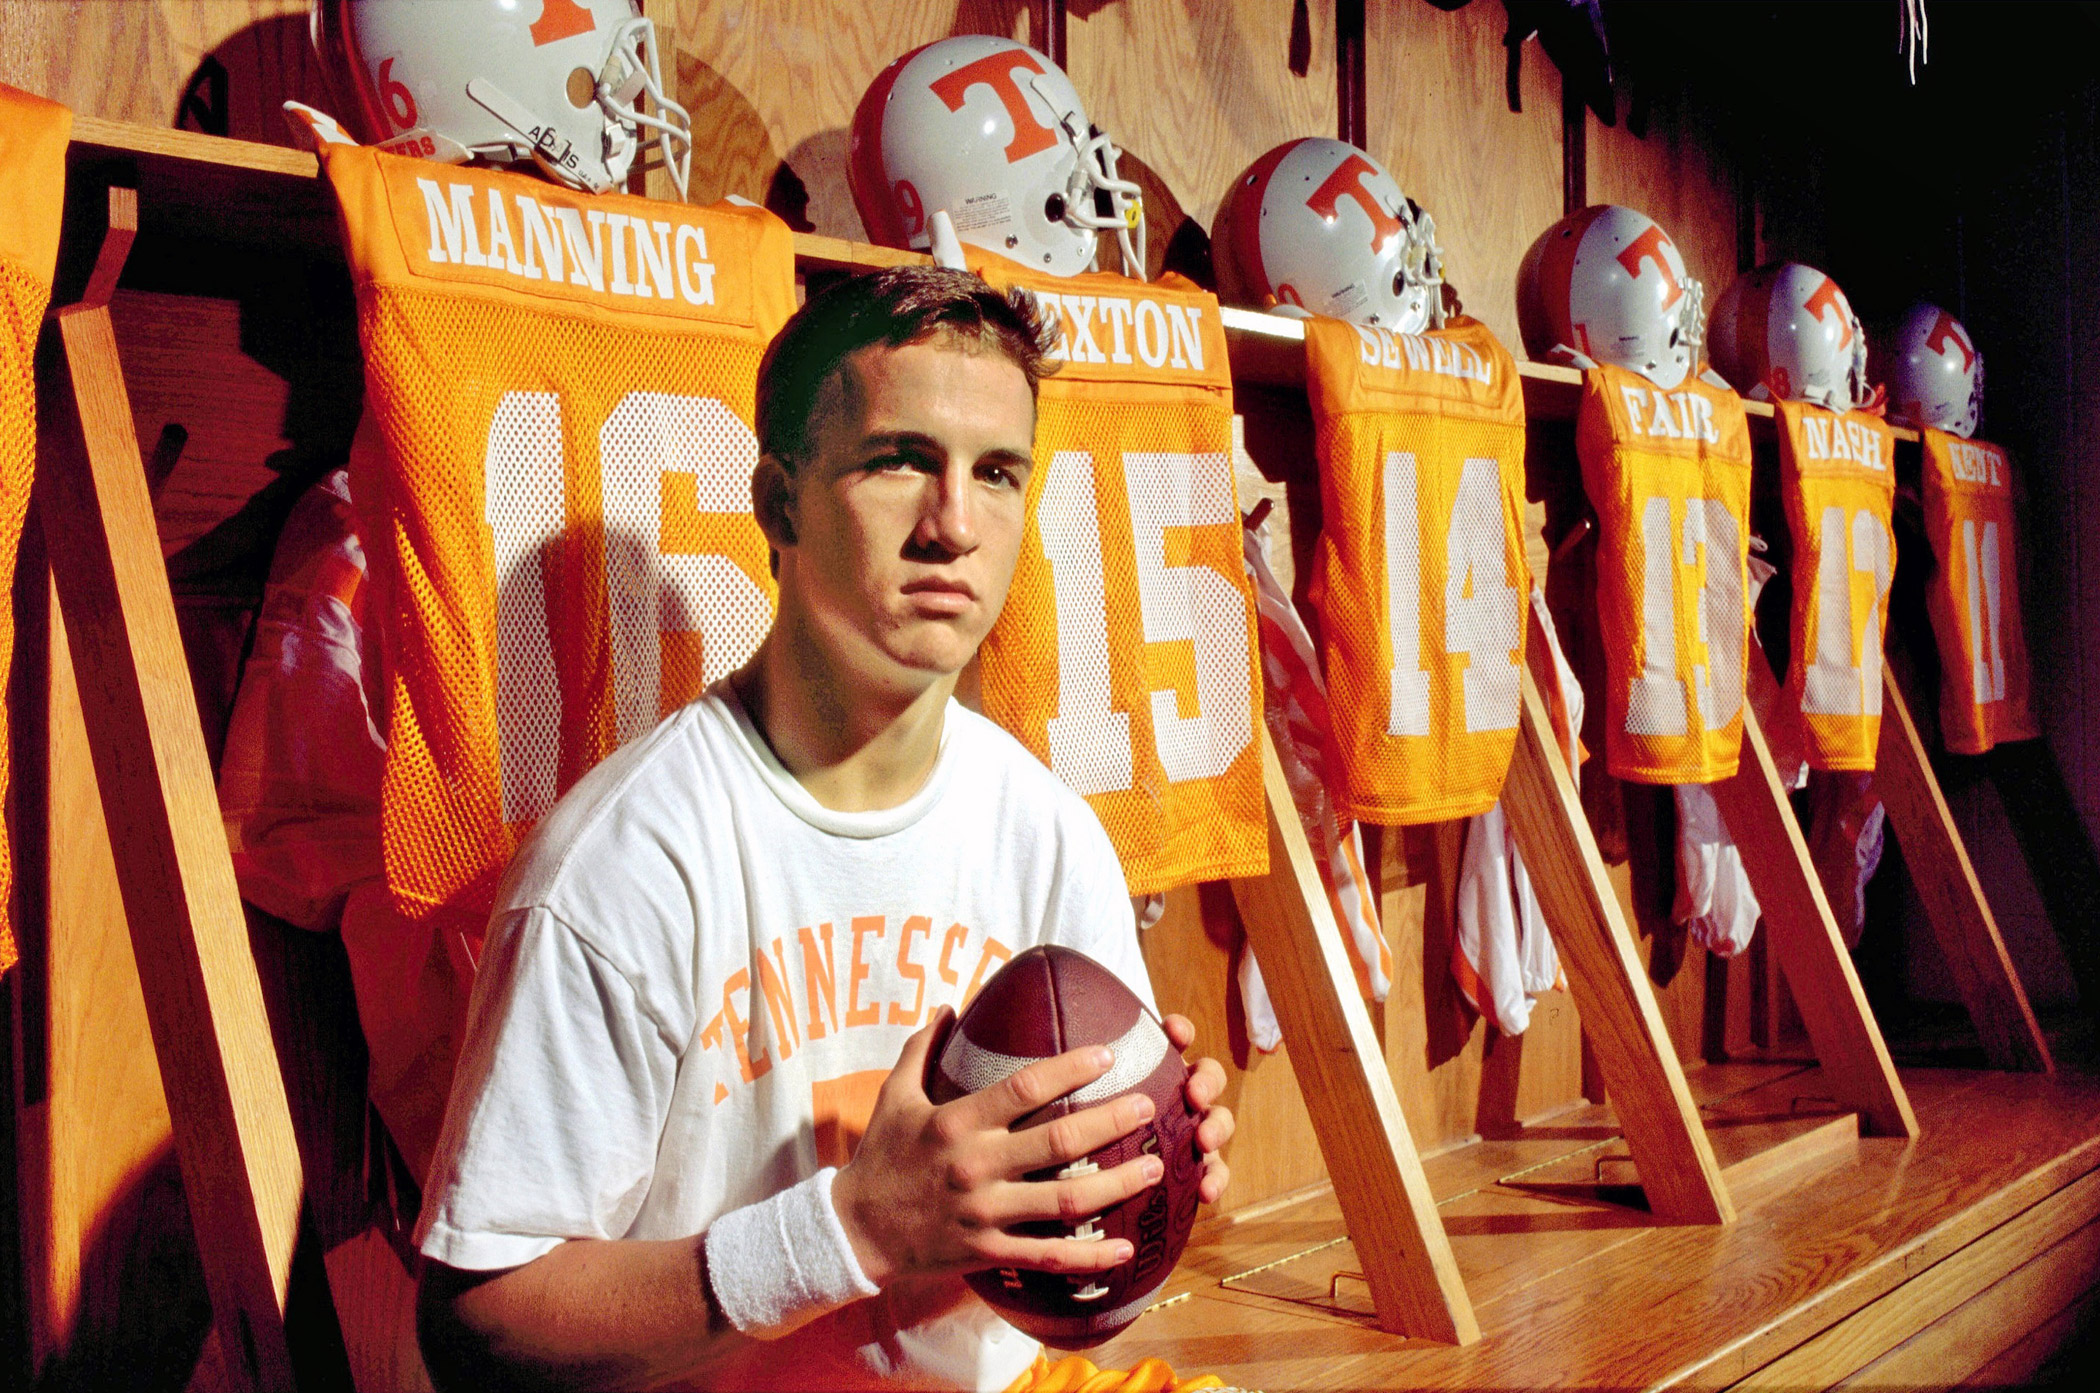 Peyton Manning played quarterback in college football with the Tennessee Volunteers, seen here in the locker room circa 1995 in Knoxville, Tenn.